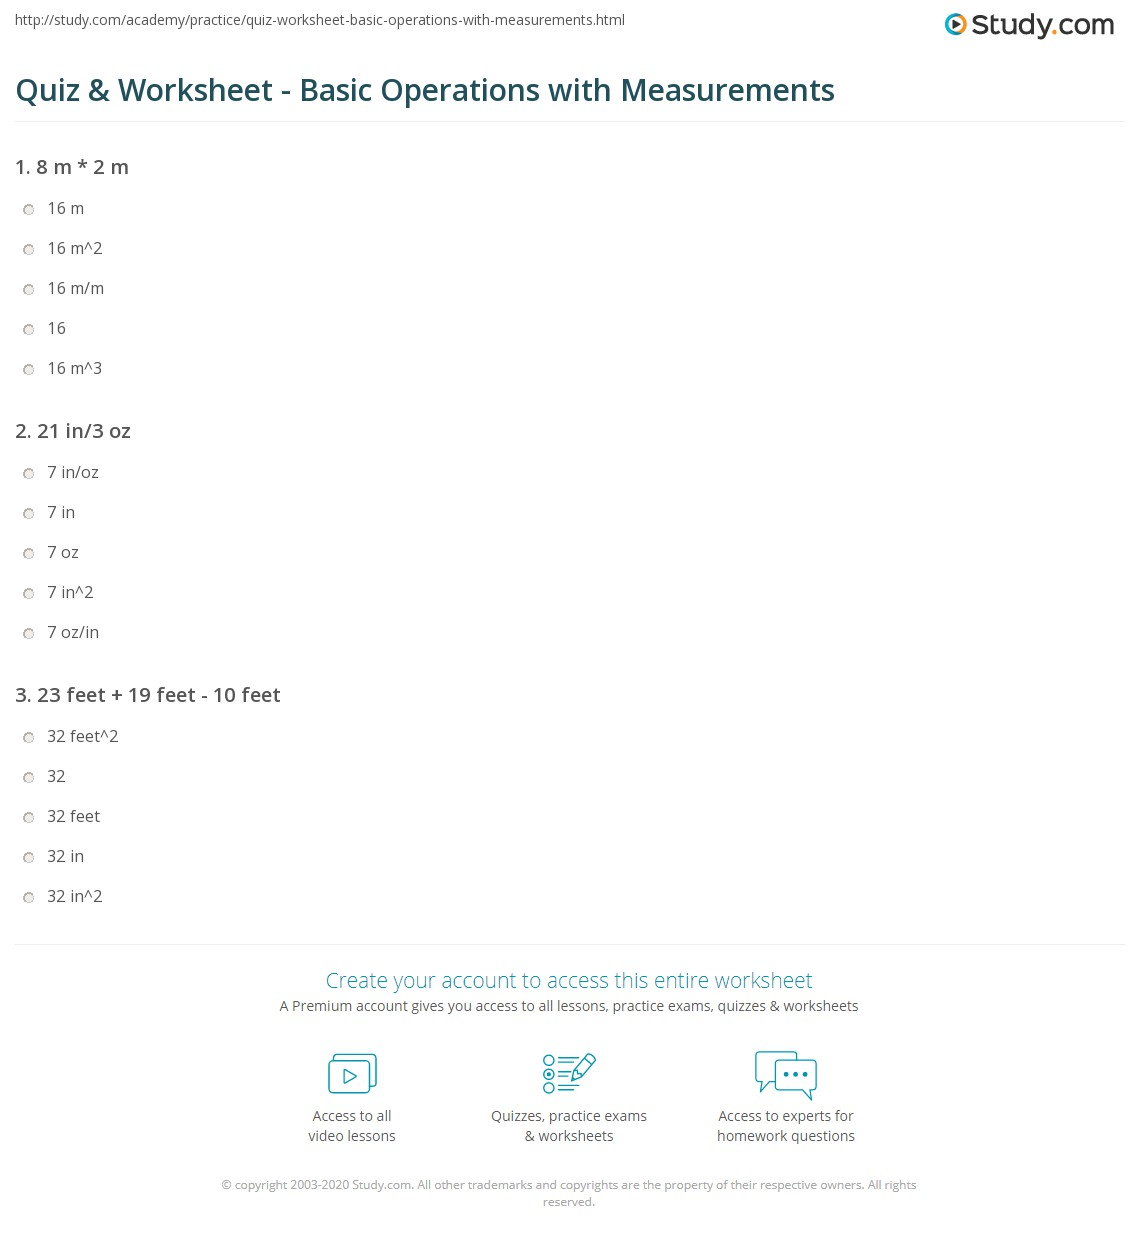 quiz  worksheet  basic operations with measurements  studycom print how to perform basic operations with measurements worksheet